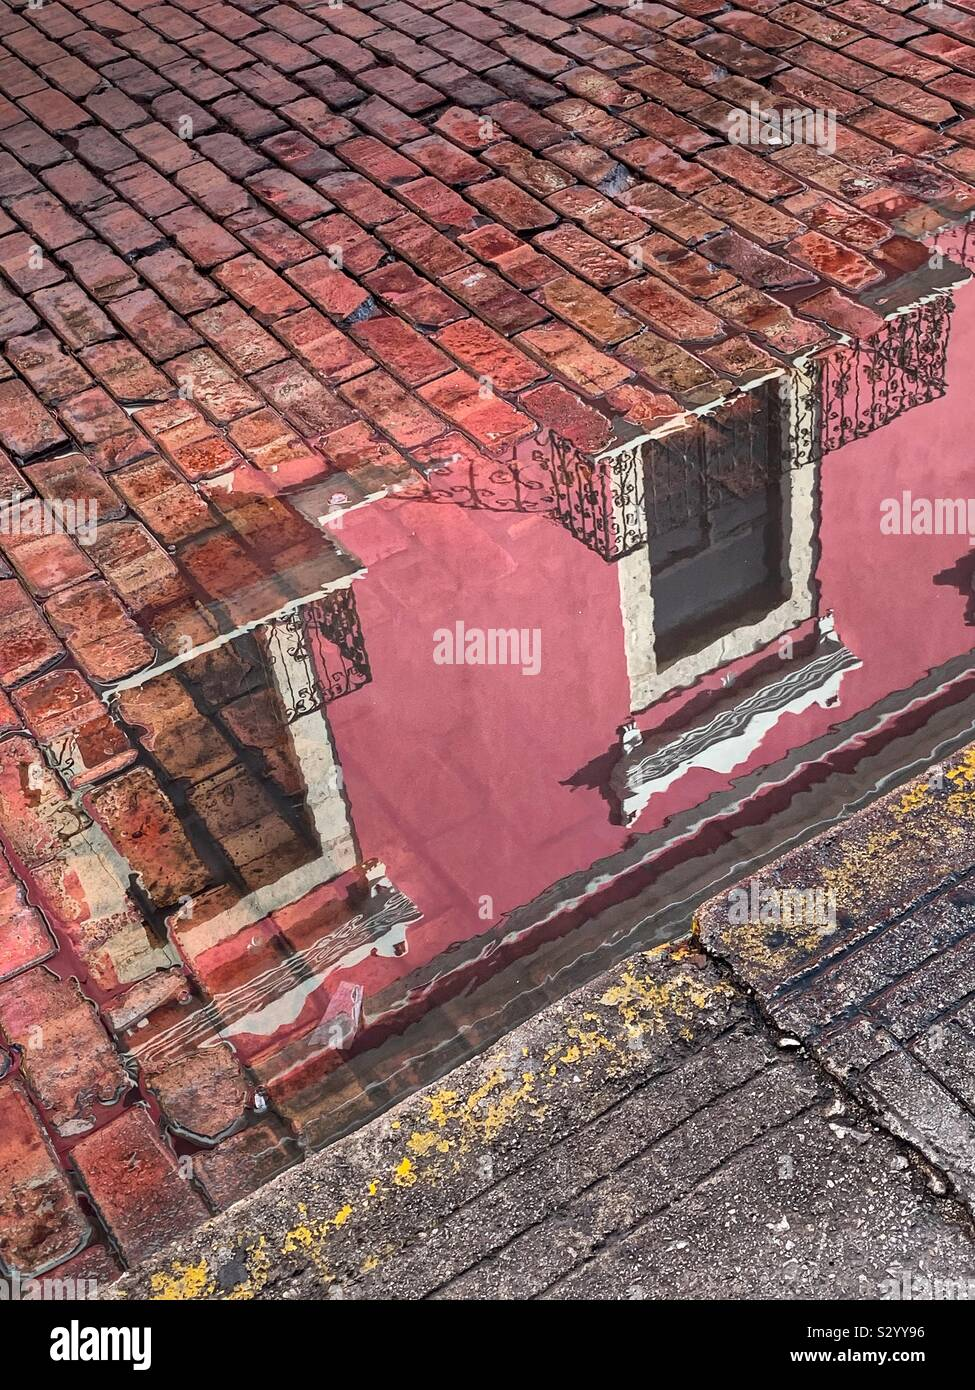 A pink building is beautifully reflected in a rain puddle curbside on a street in Mérida, México. Stock Photo